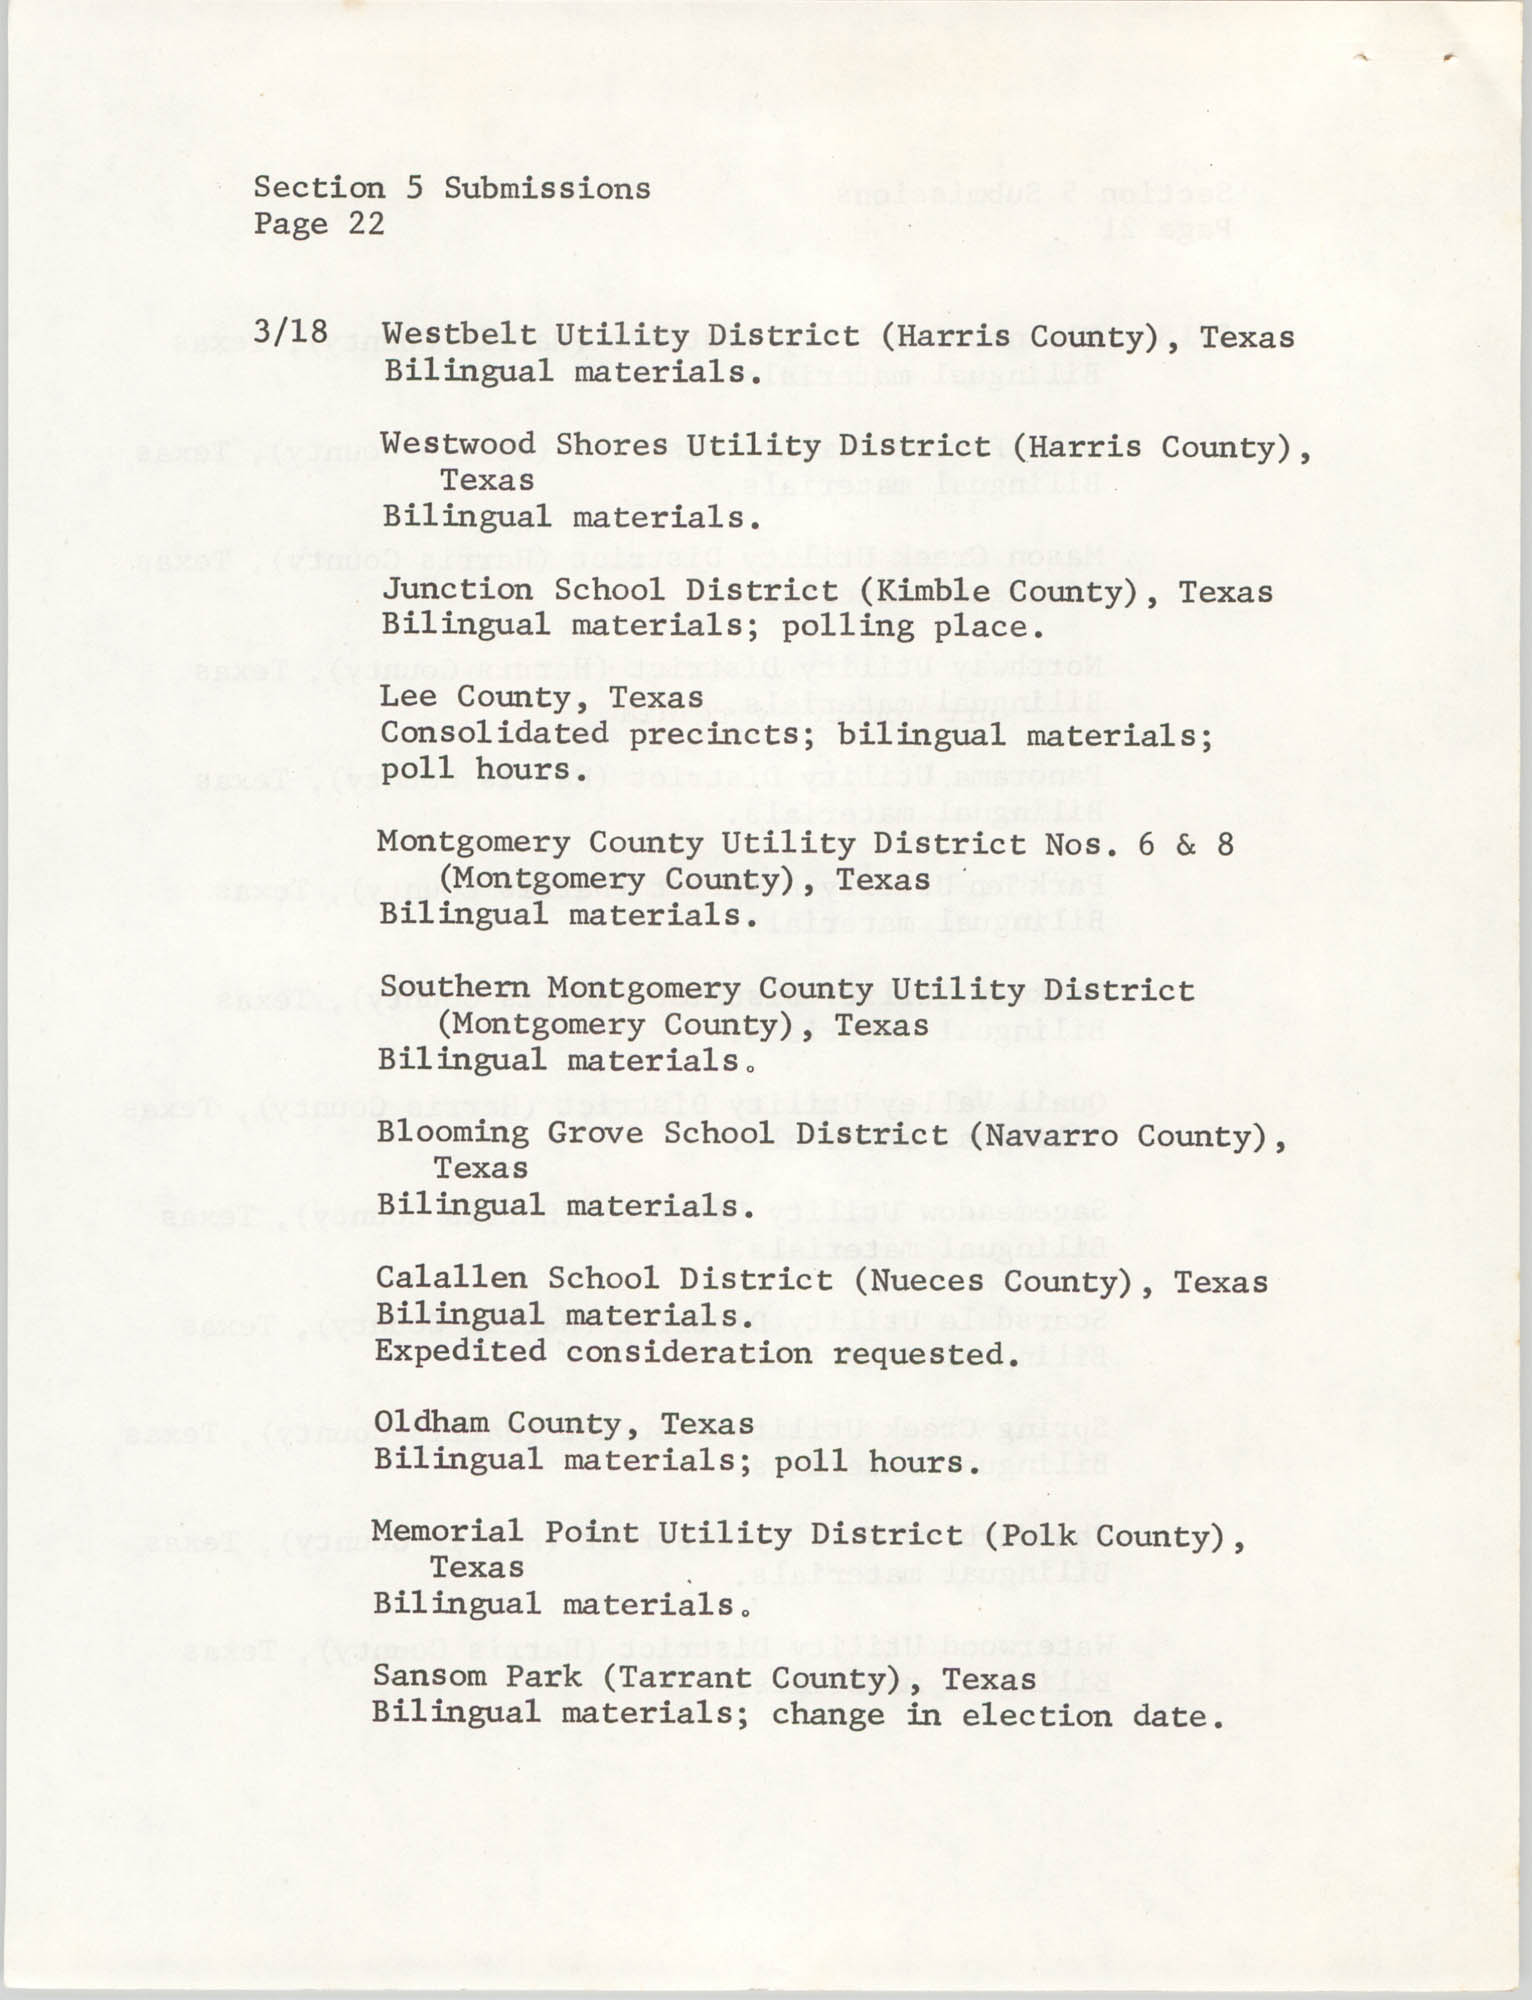 United States Department of Justice Notice, March 26, 1976, Page 22